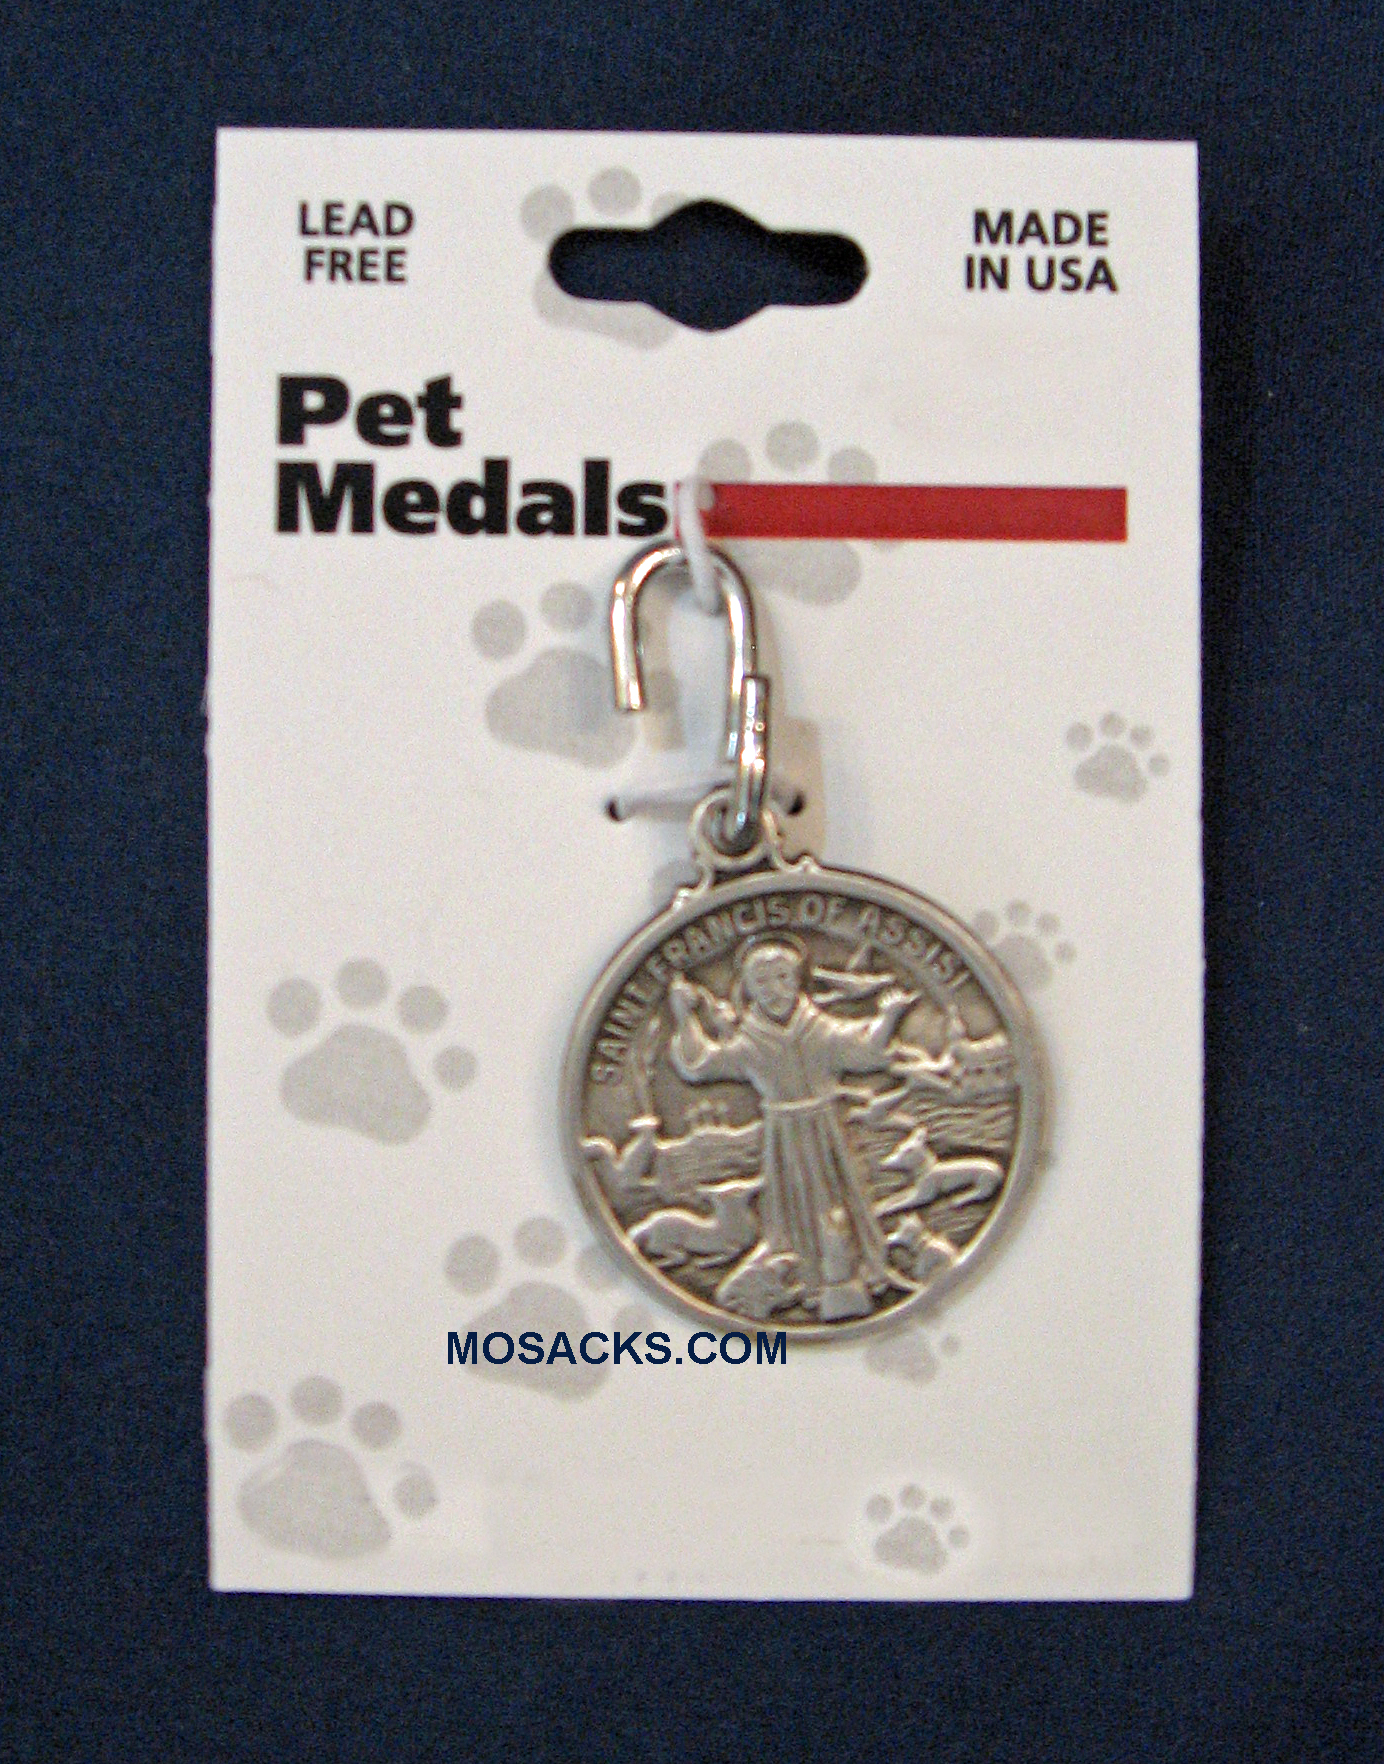 St. Francis Pewter Pet Medal 699-4800SX